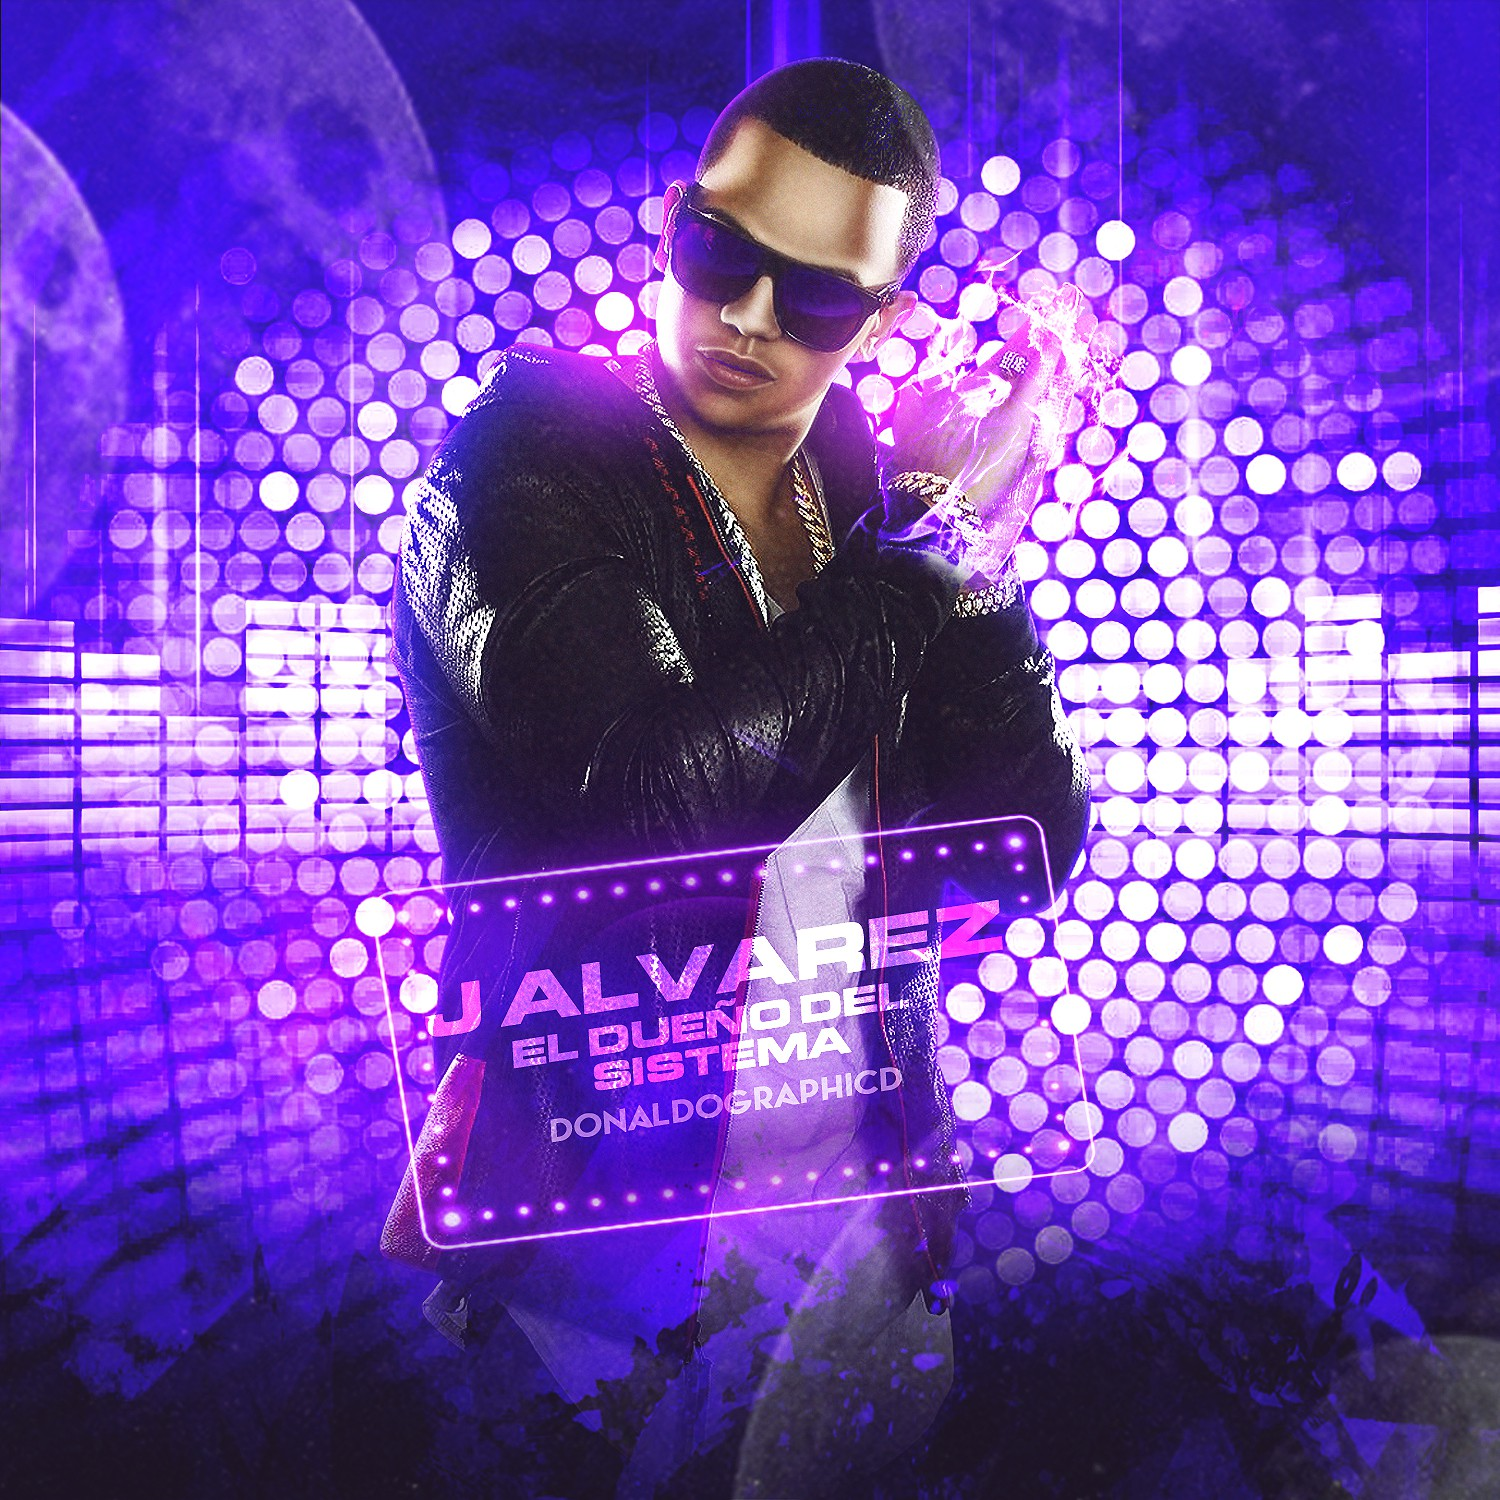 Wallpapers J Alvarez